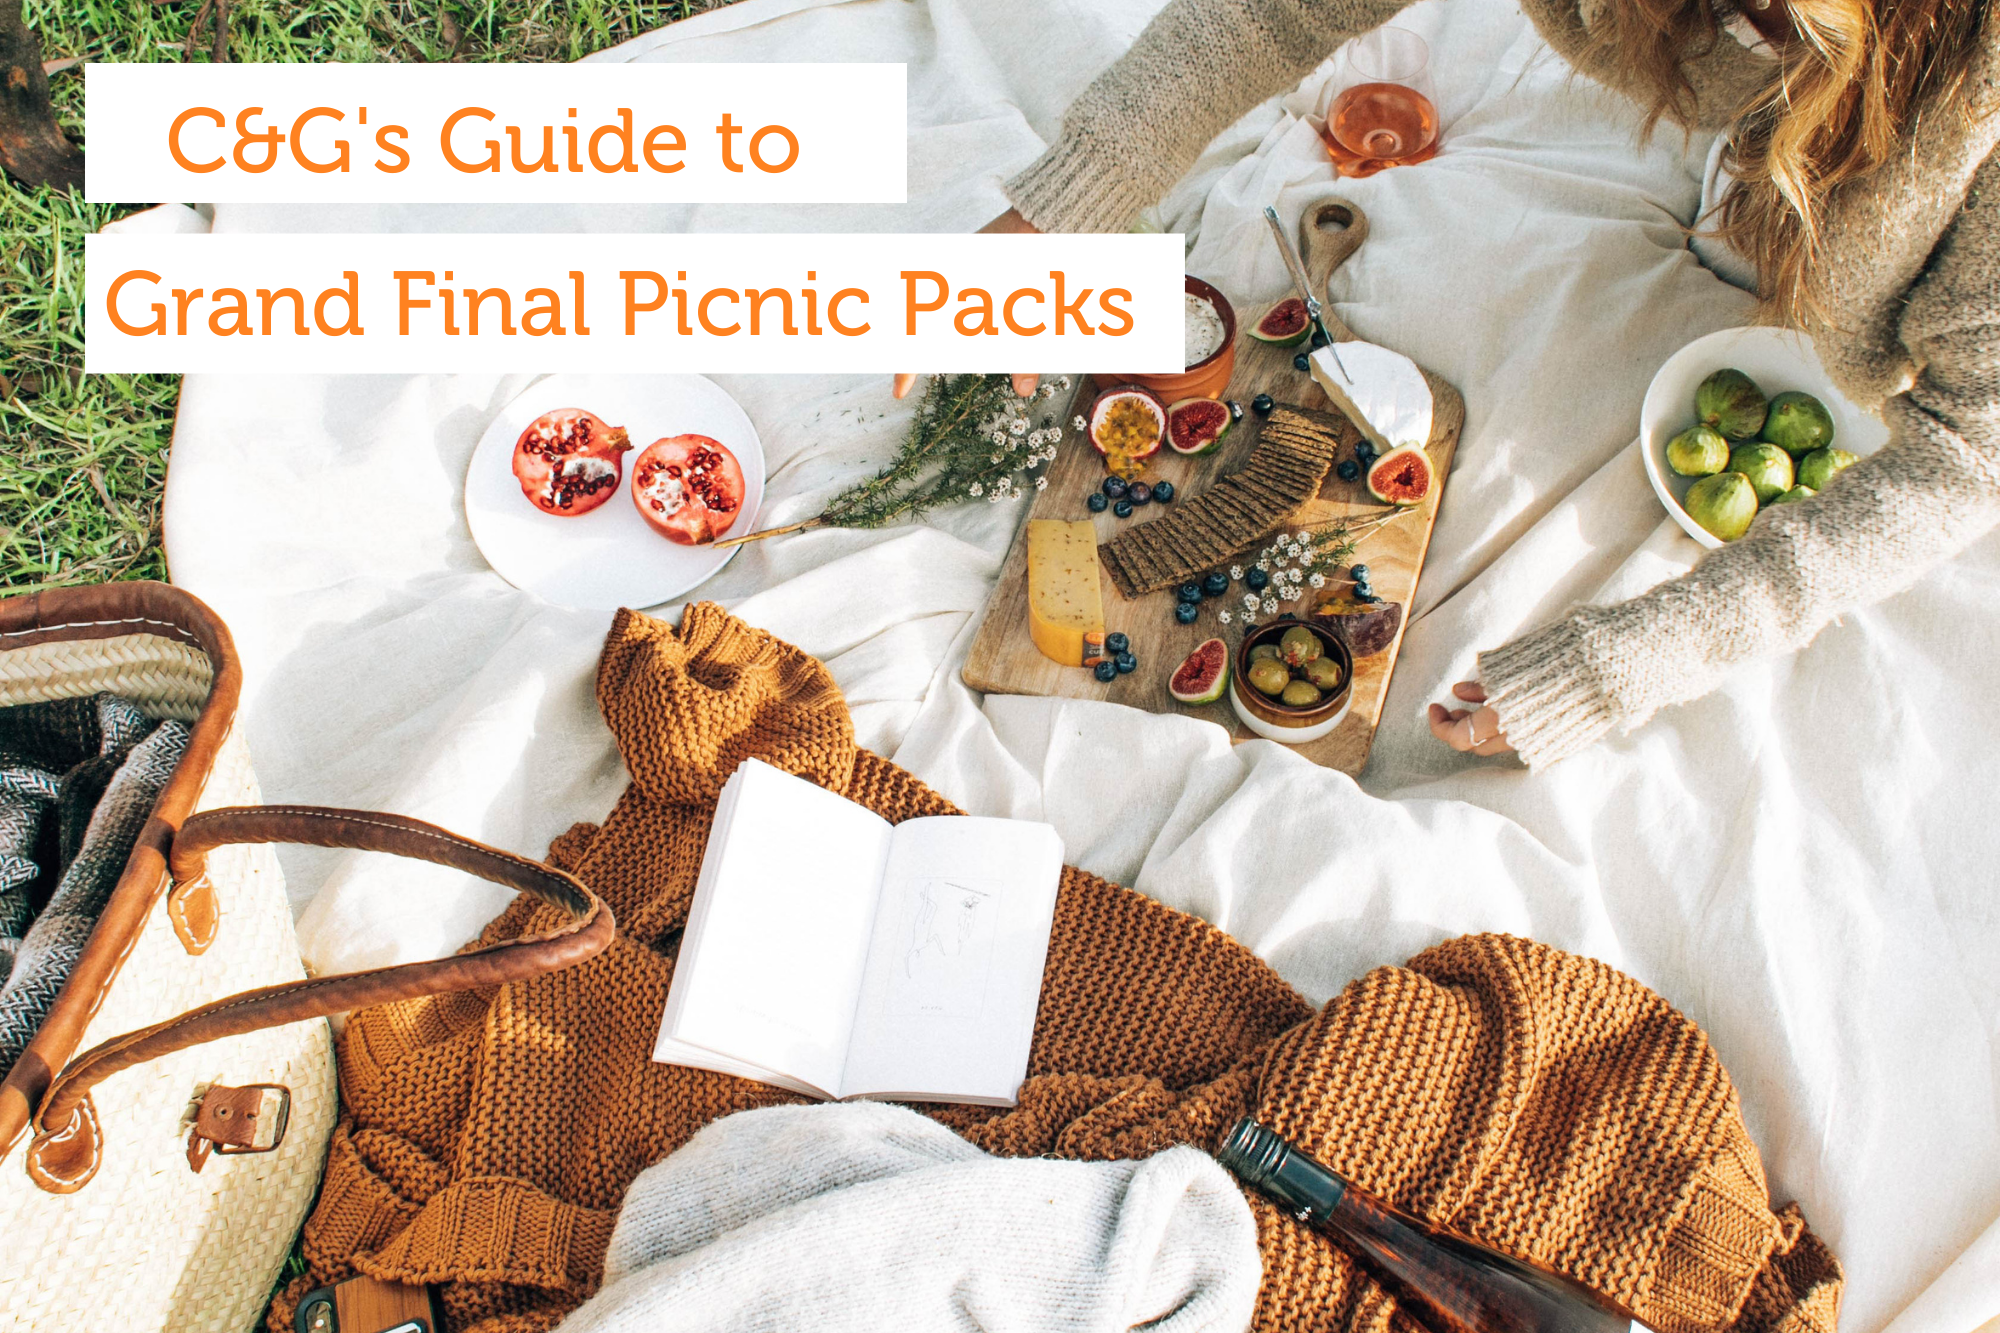 C&G's Guide to Grand Final Picnic Packs